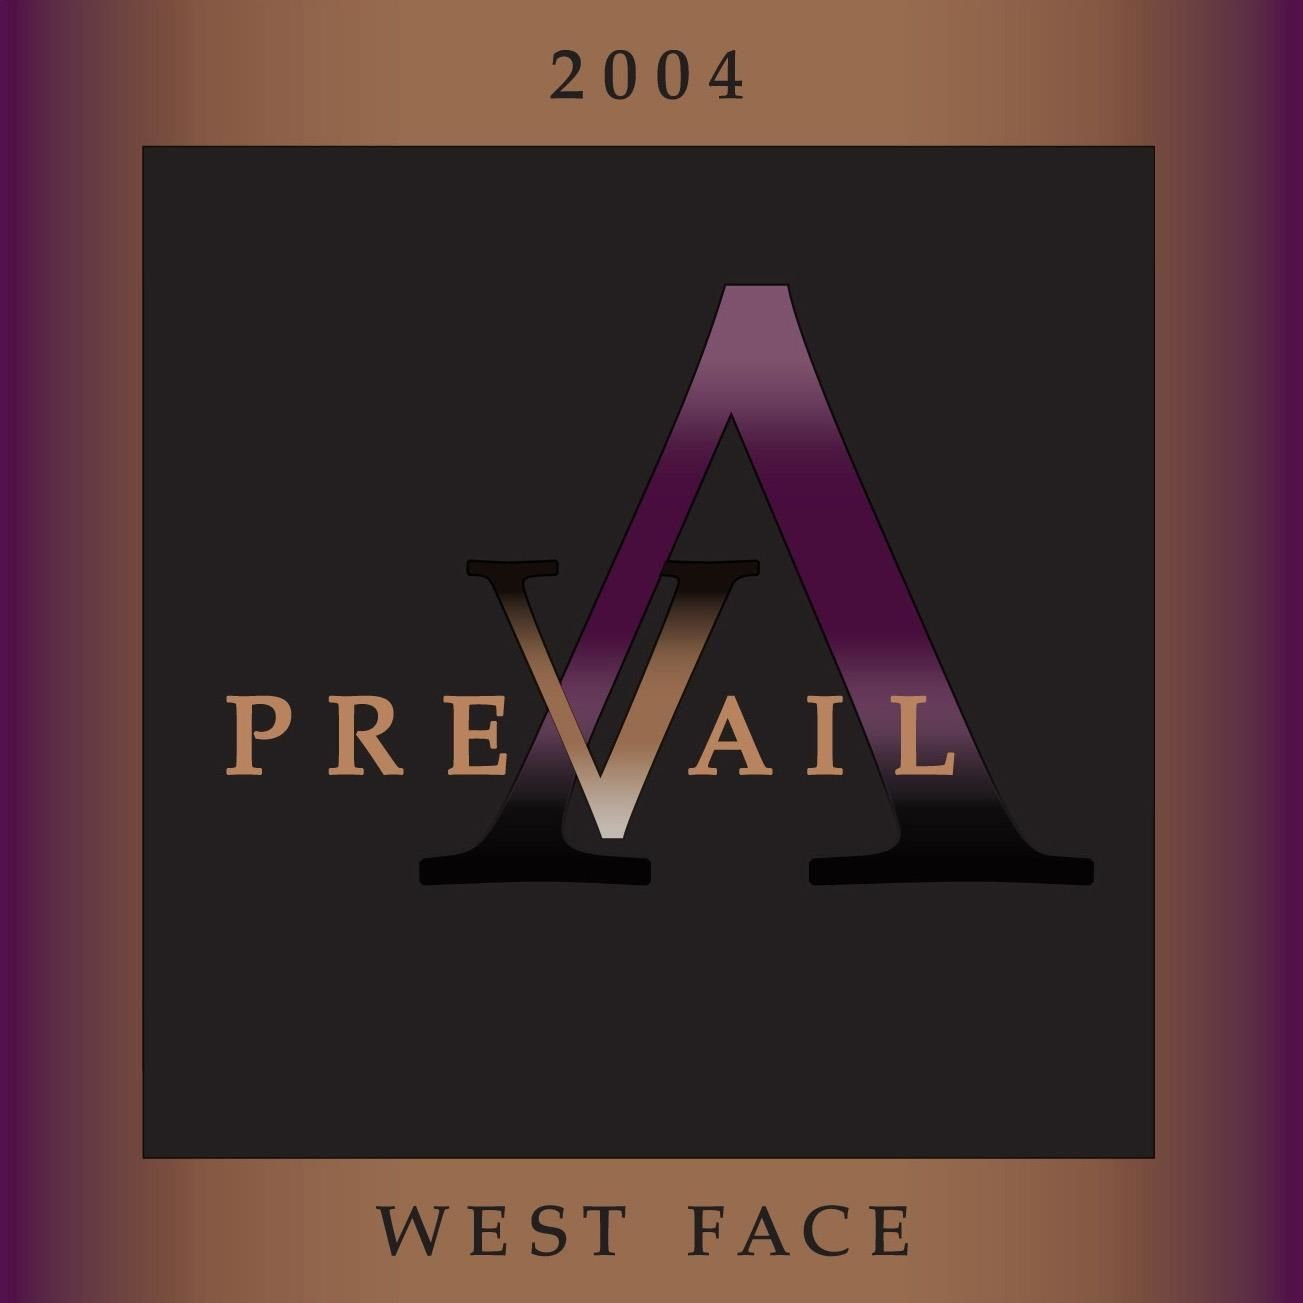 Ferrari-Carano Prevail West Face 2004 Front Label